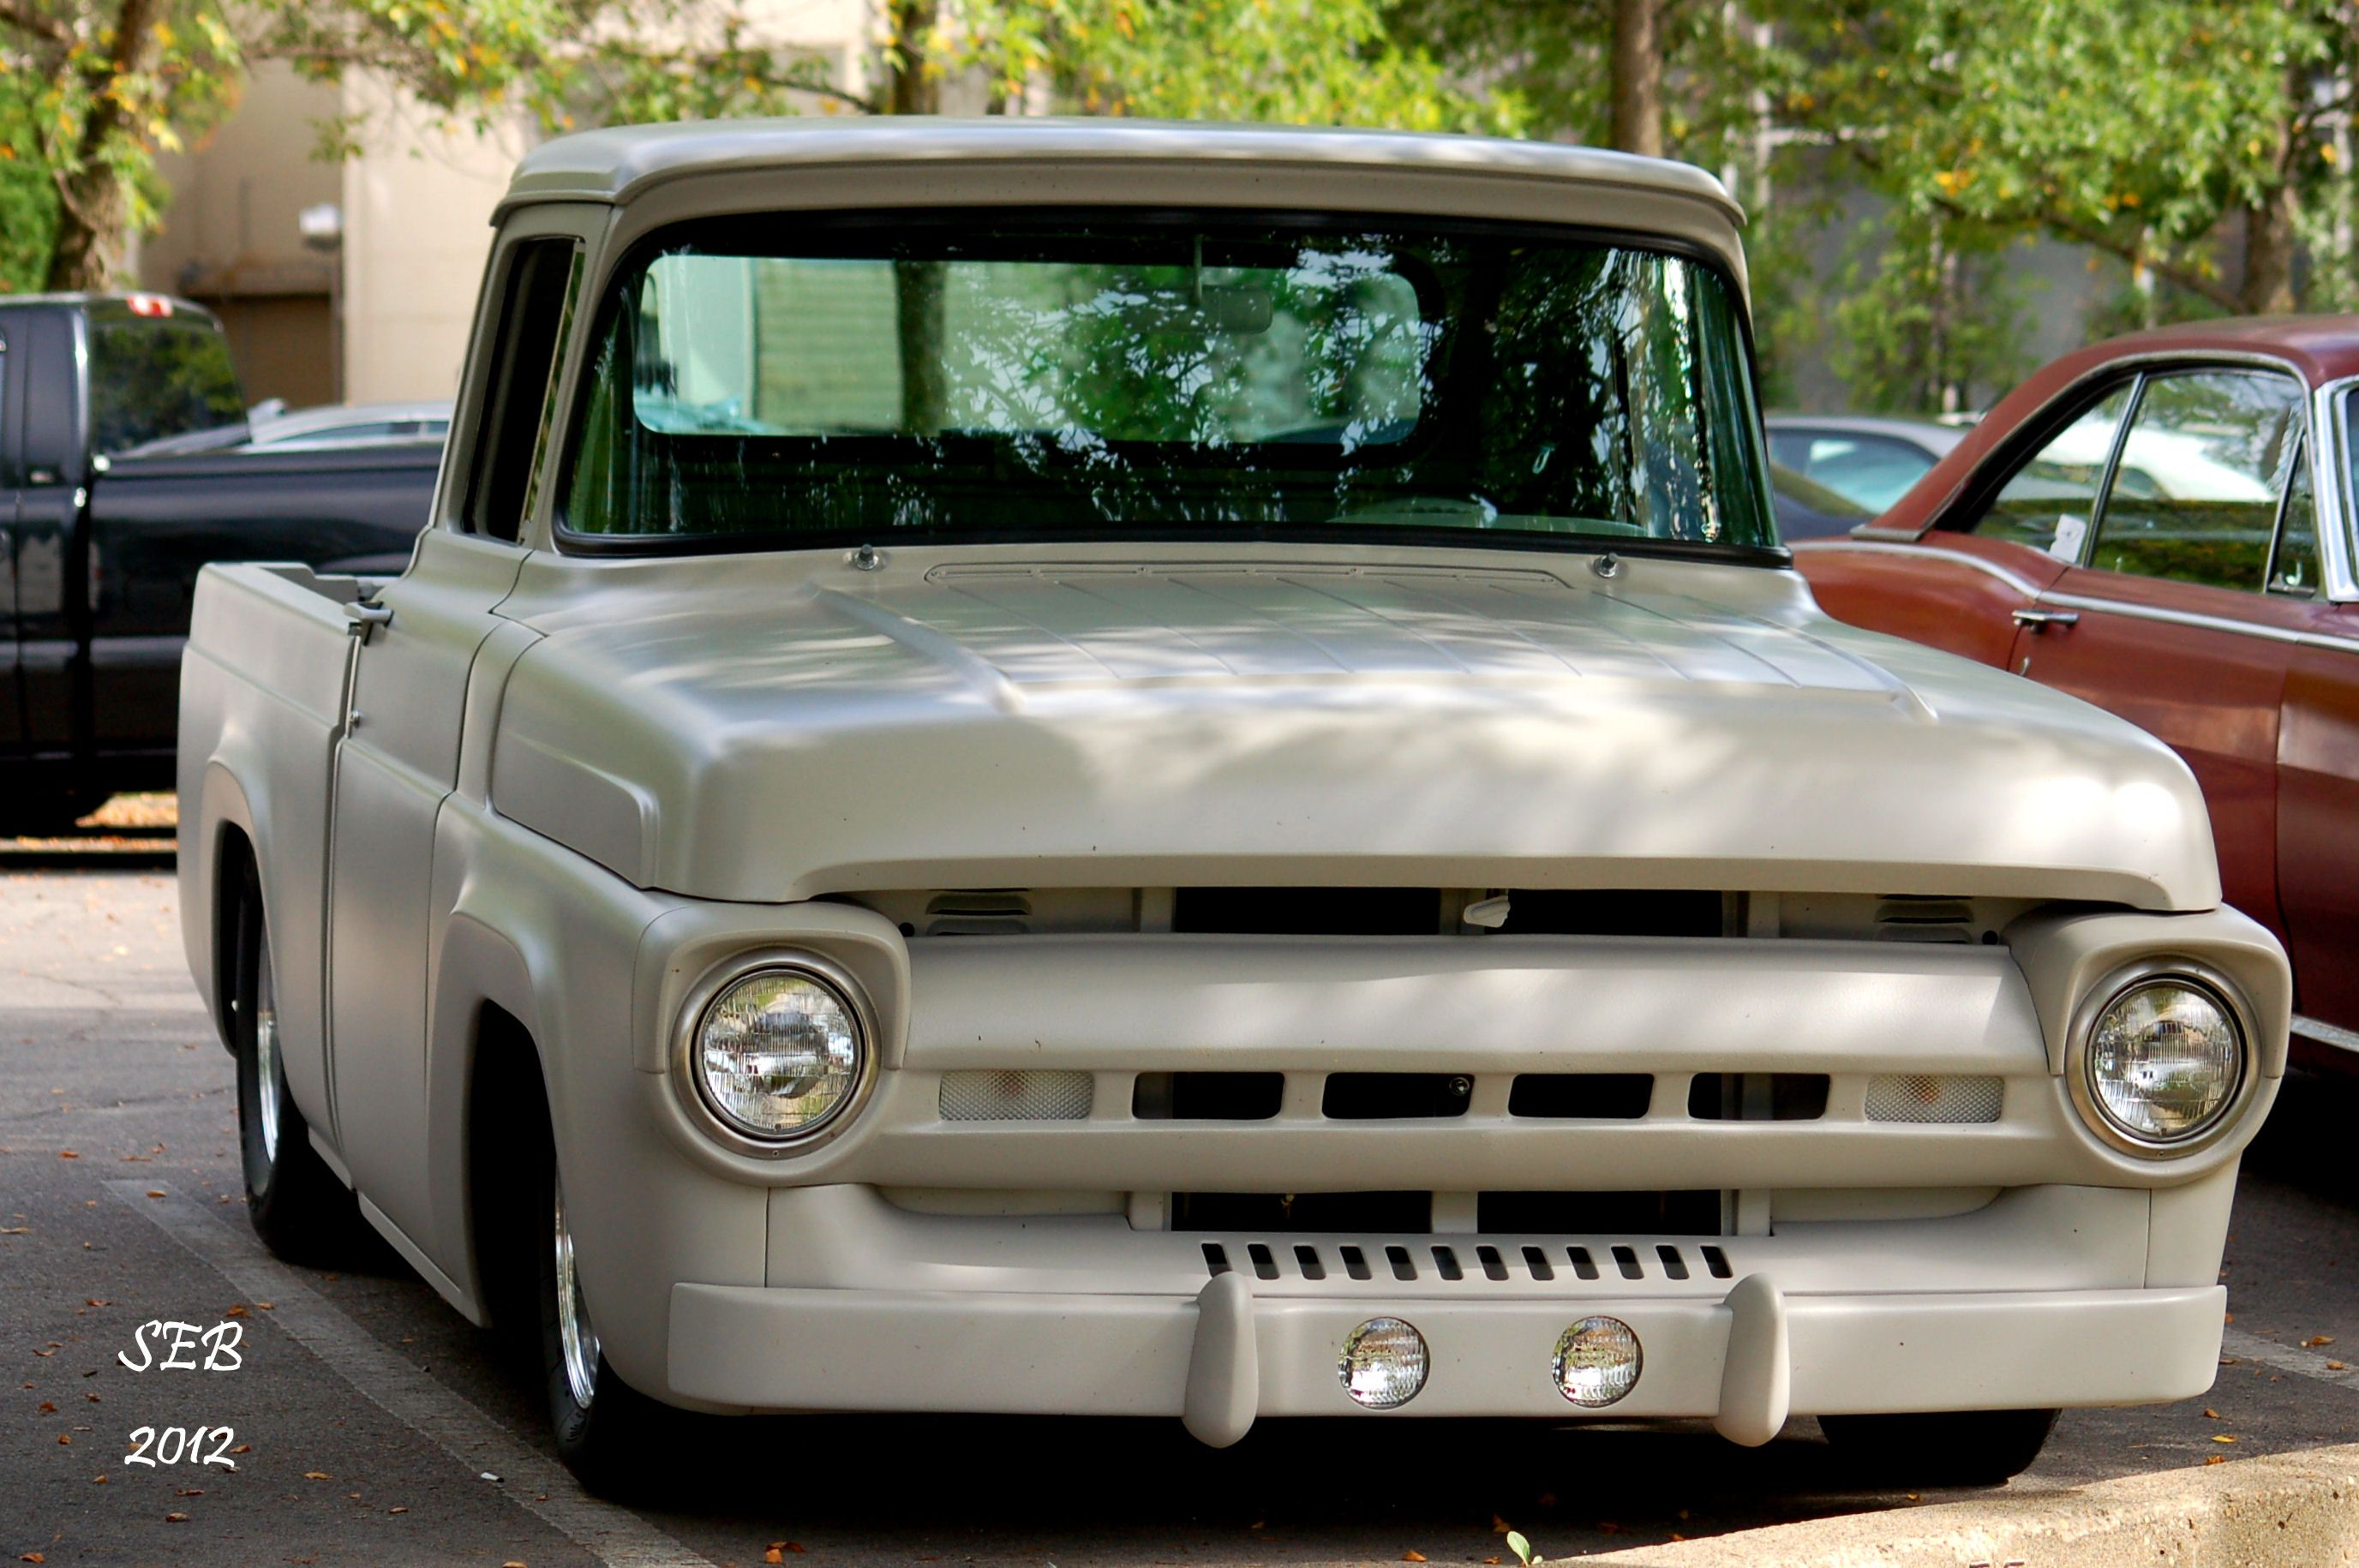 1957 Ford F-100 Pickup License plate tag  F100 Pick Up Truck Hot Rod Classic 57